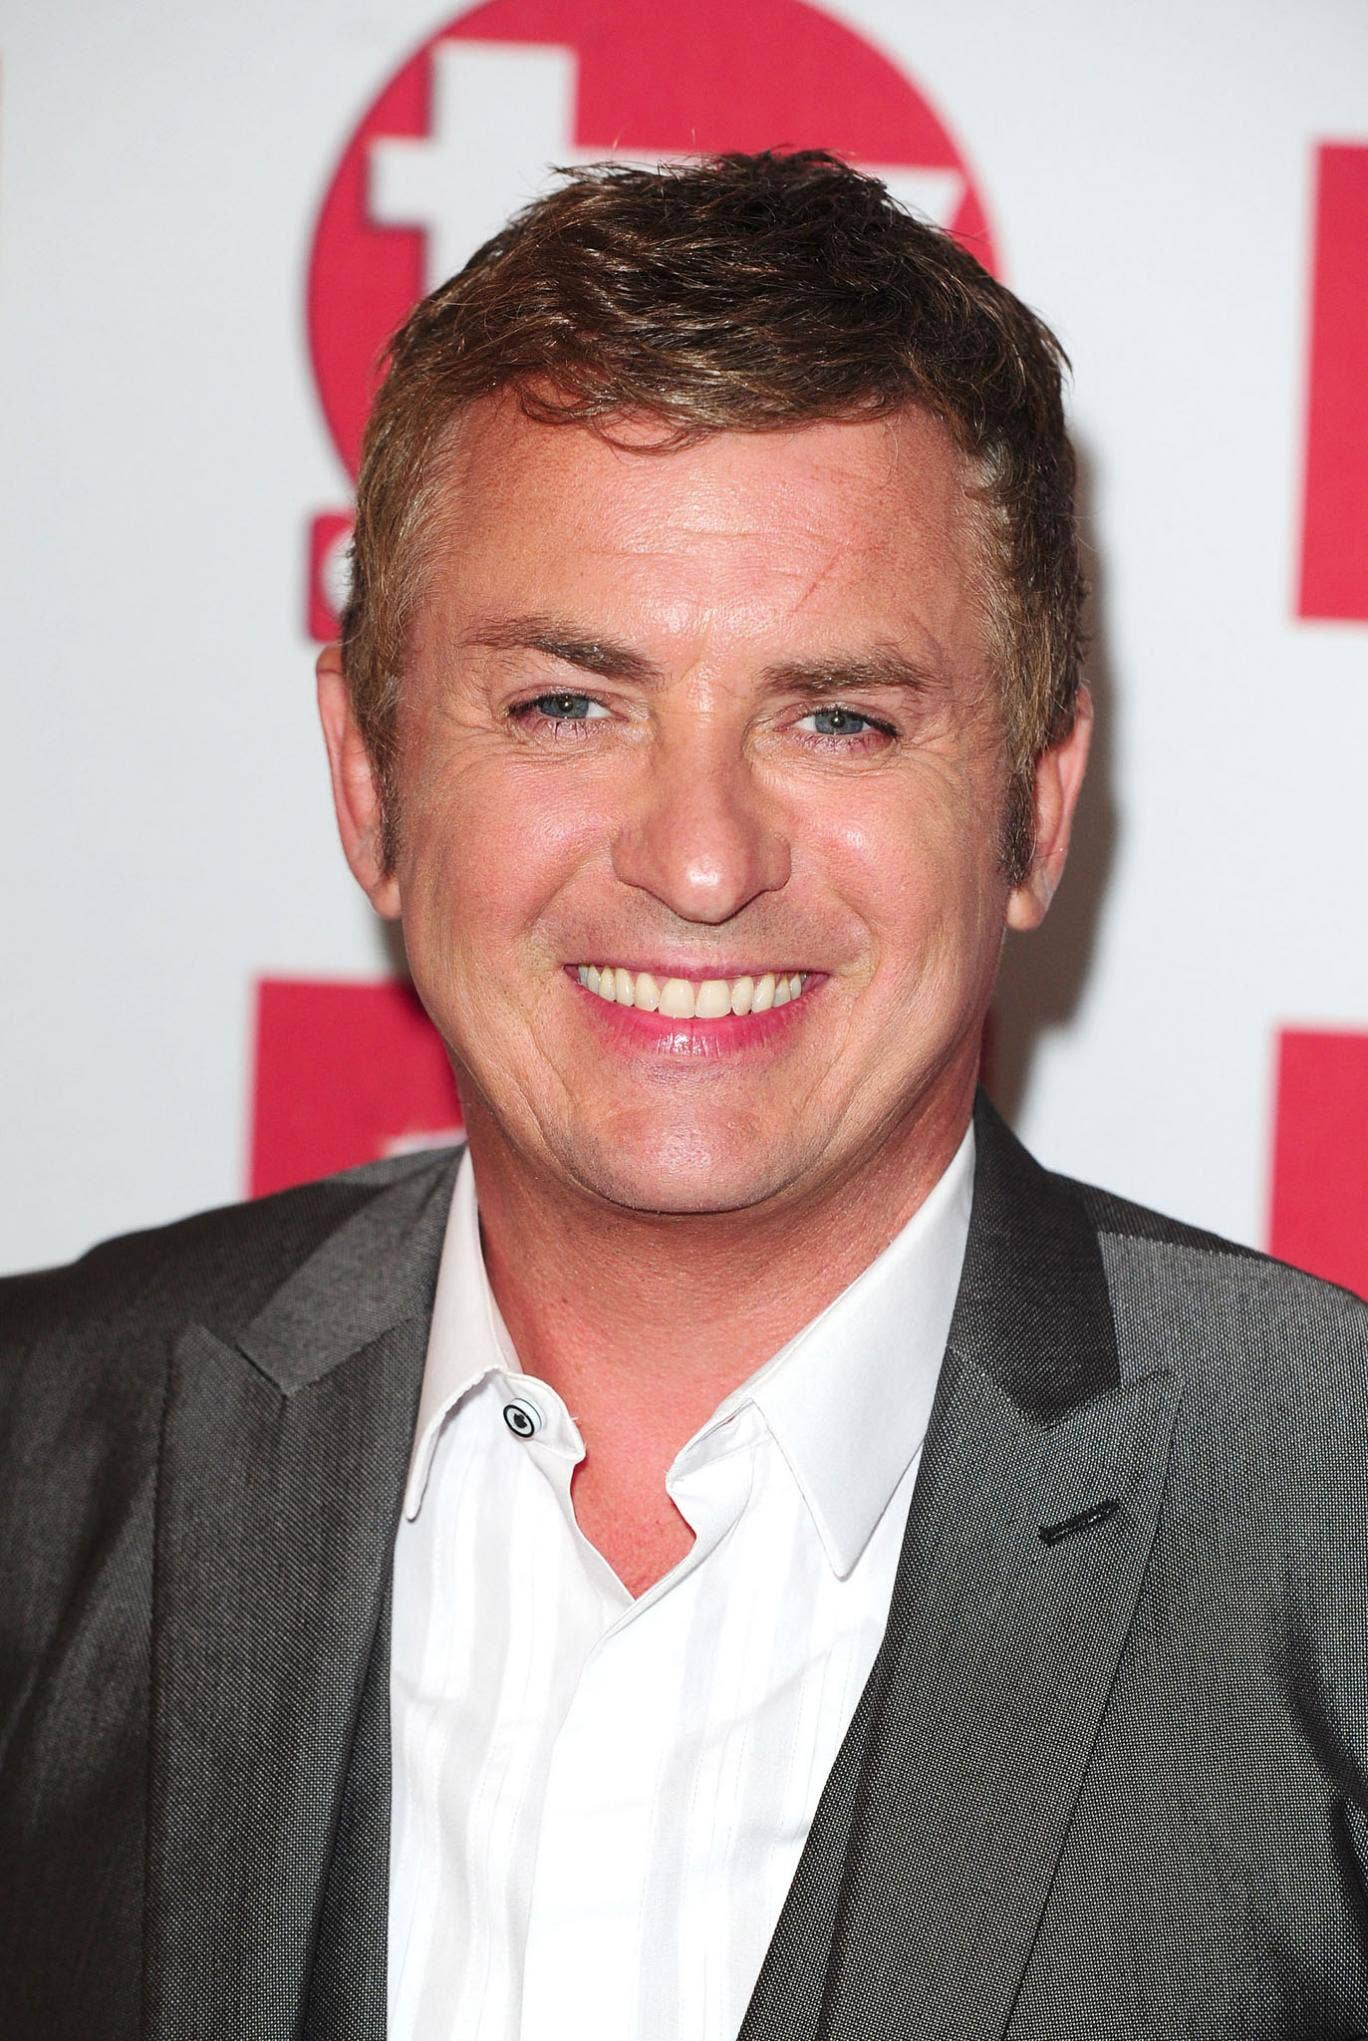 Shane Richie will present a new Saturday night game show called 'Reflex'